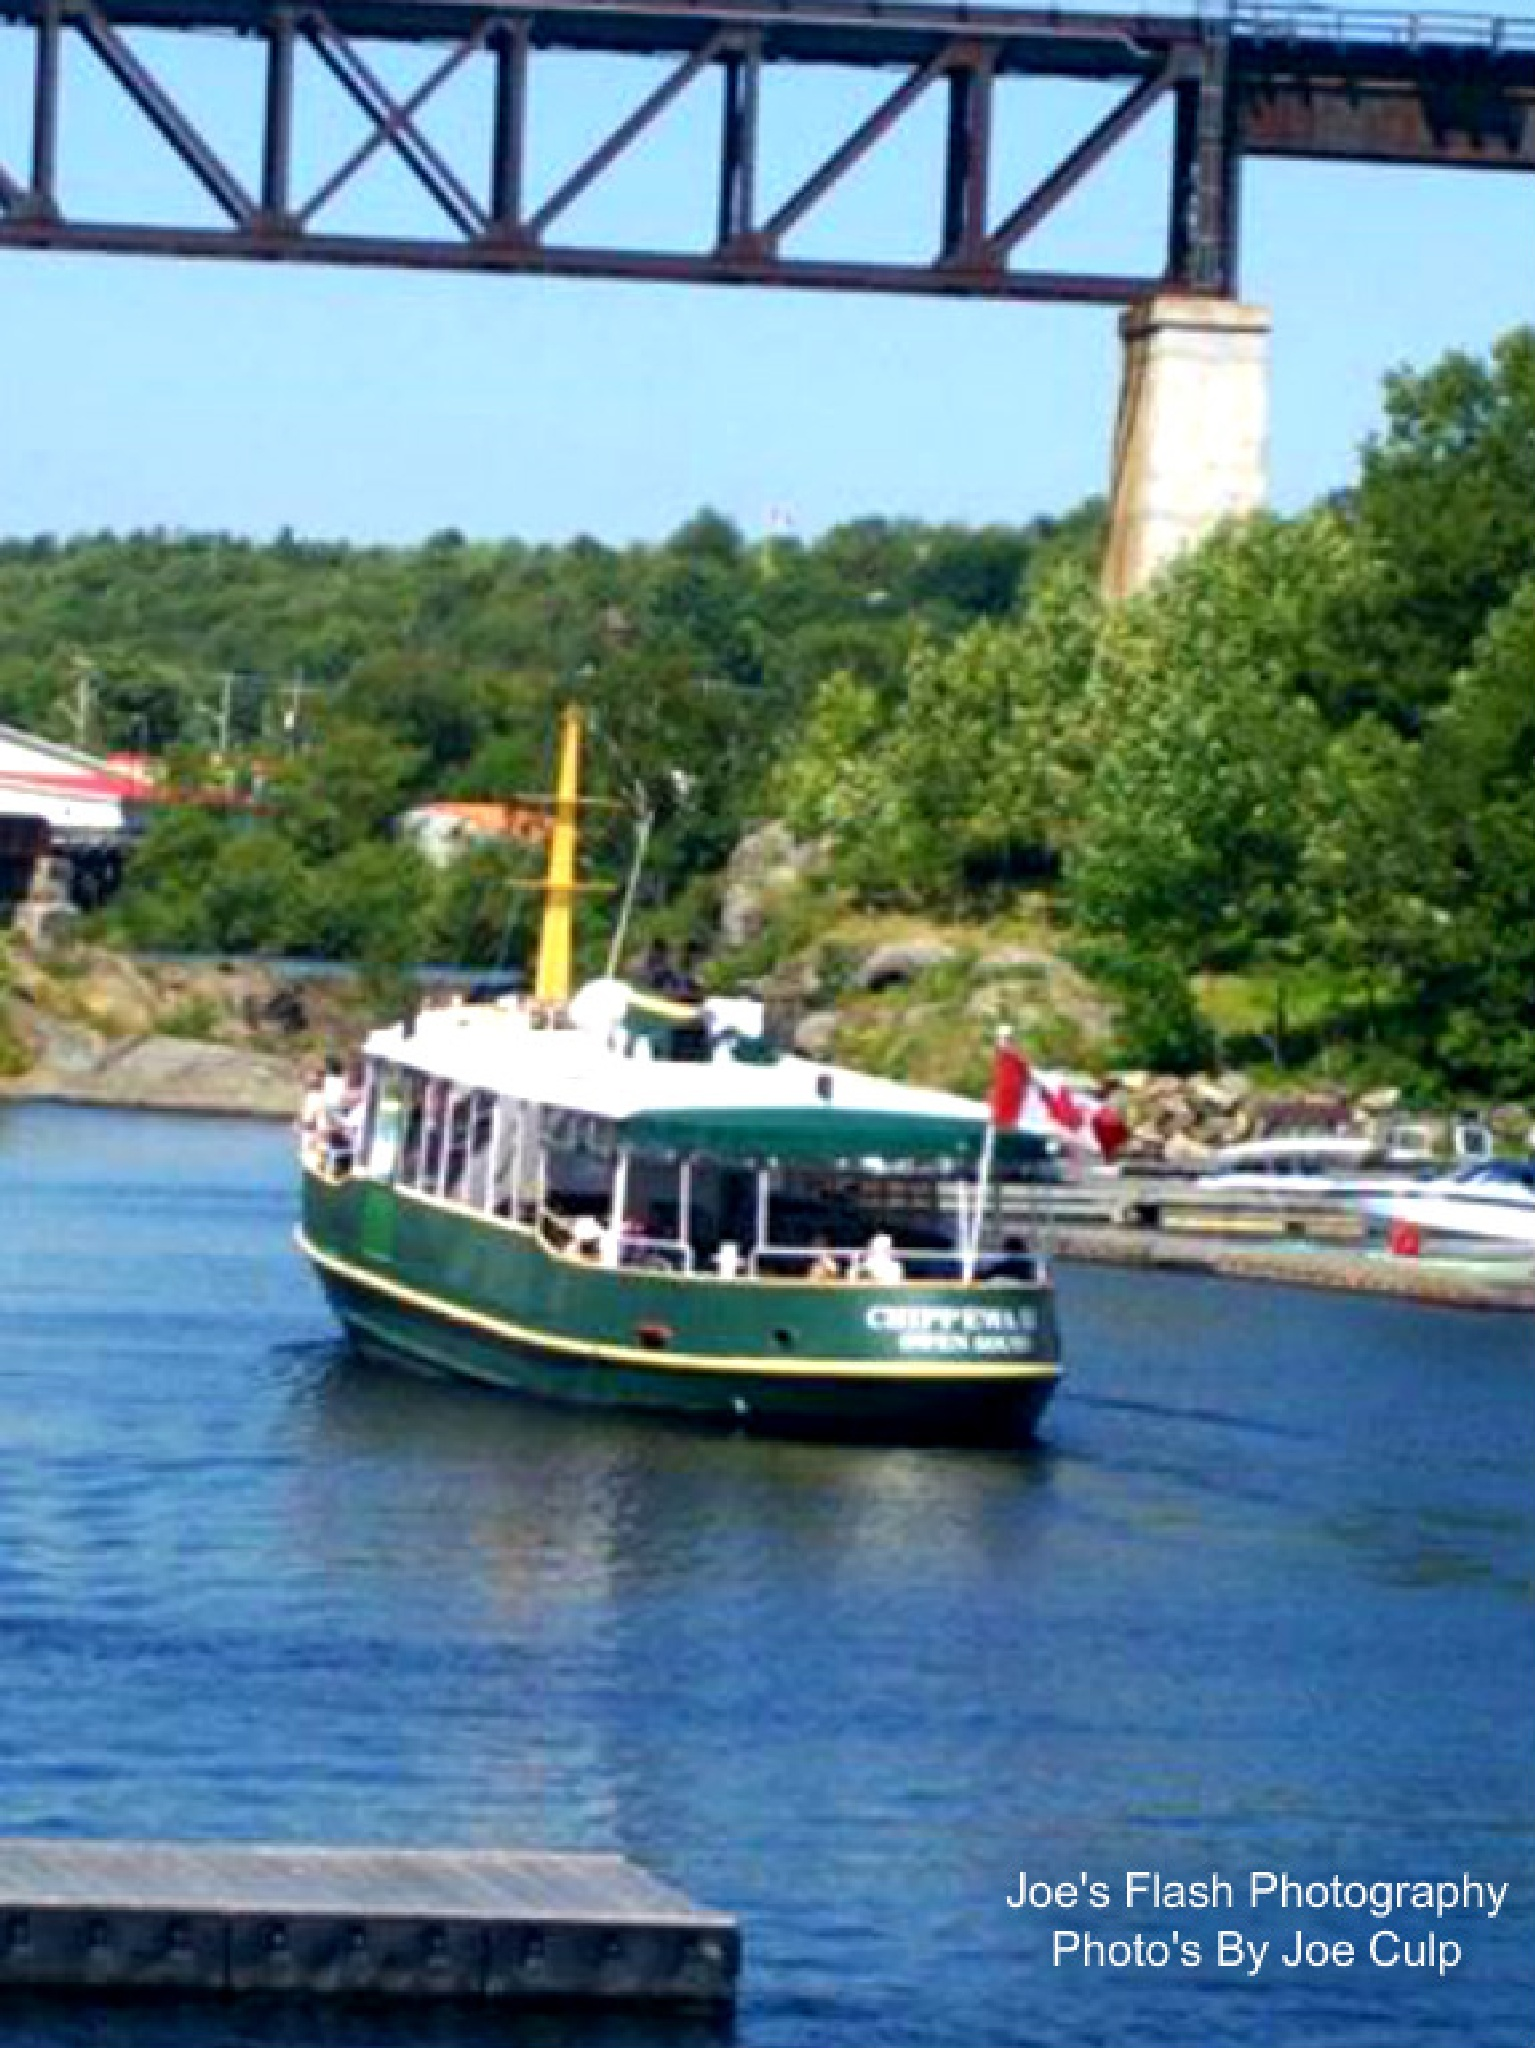 The M.V Chippewa Dinner Cruise Parry Sound Ontario by Joe's Flash Photography...Photo's By Joe Culp